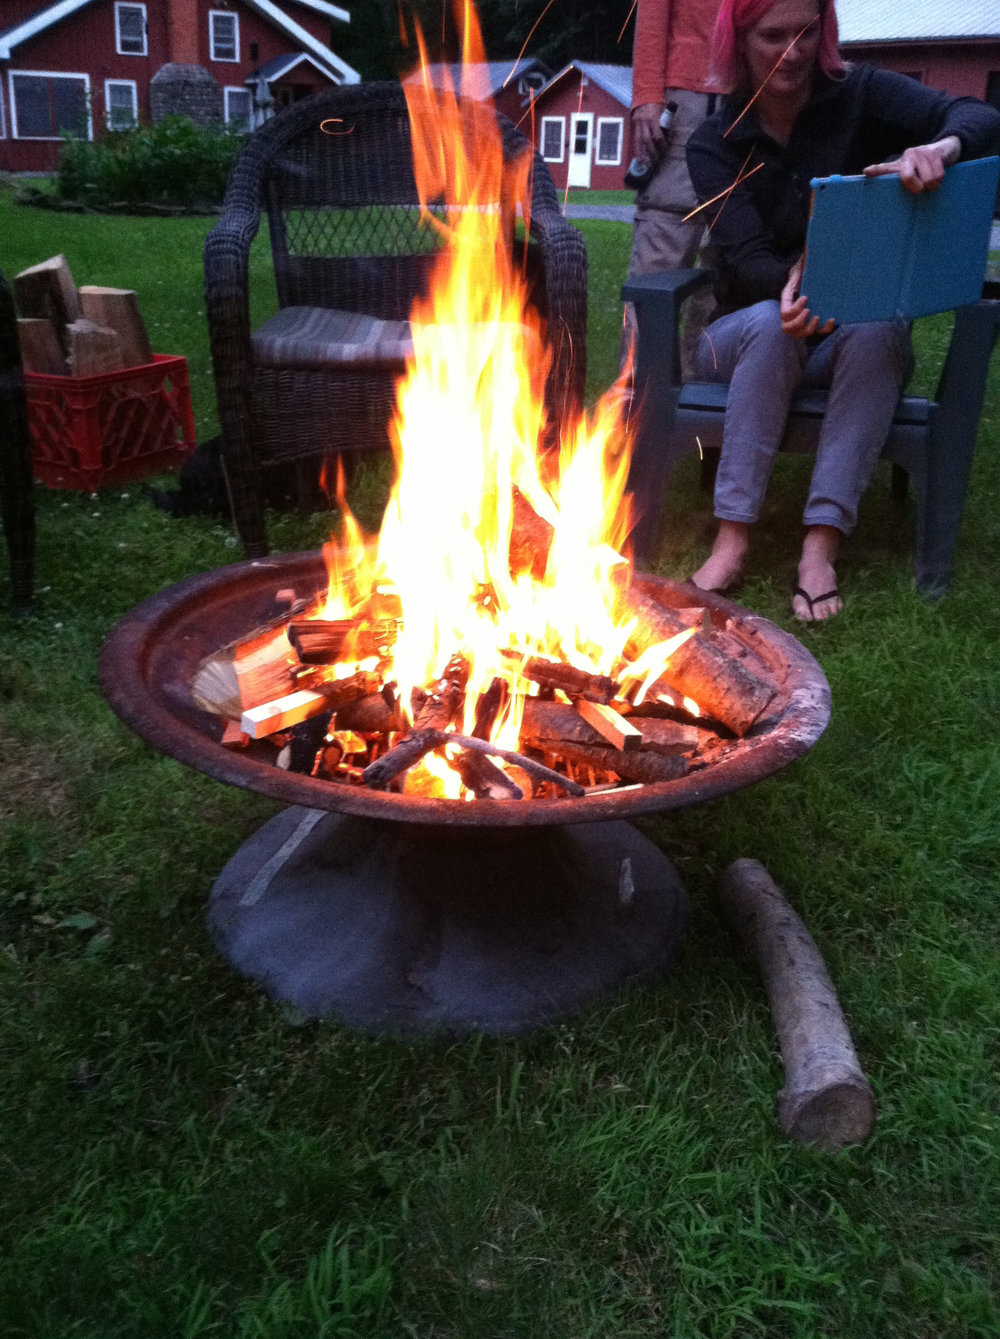 Campfires & fun at Wellnesste Lodge.